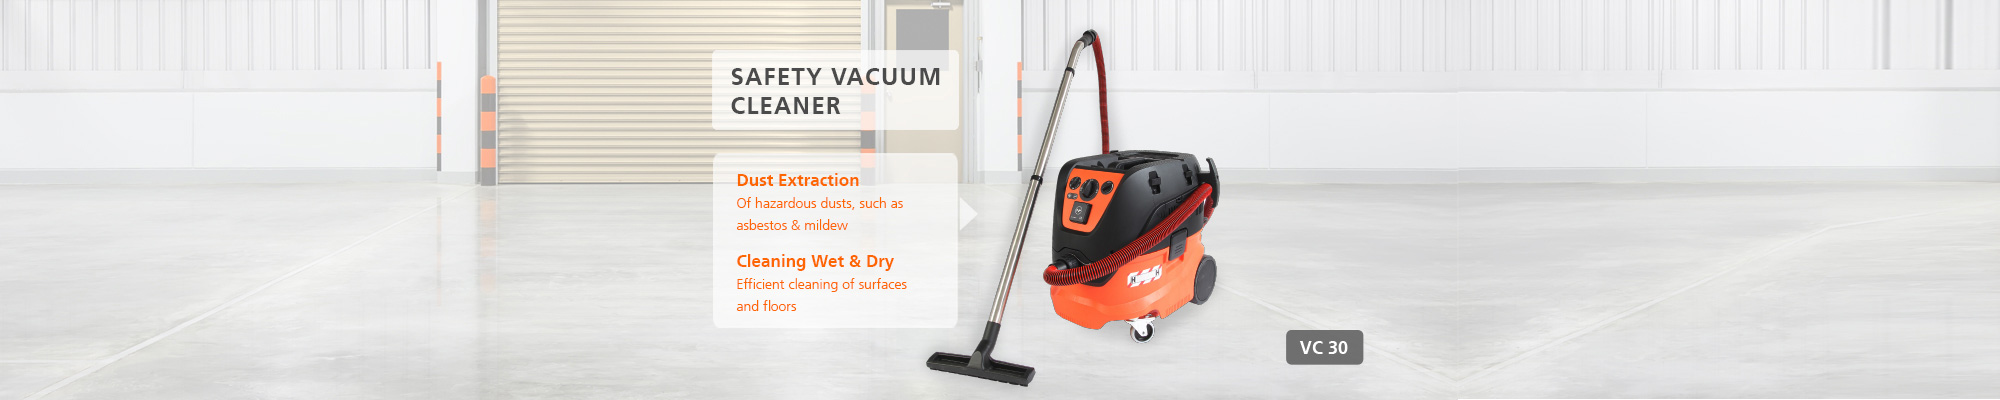 safety-vacuumcleaner